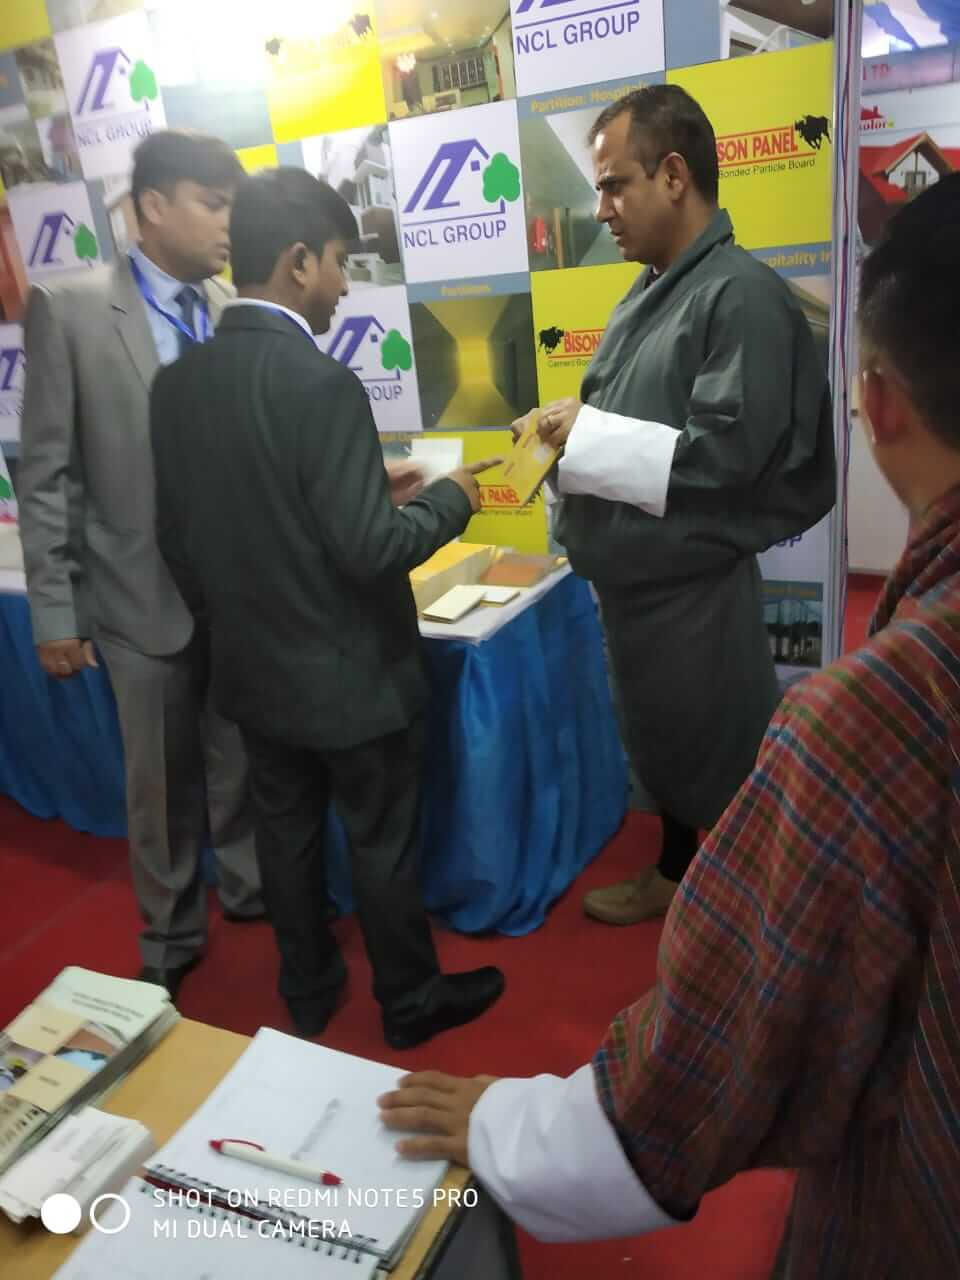 Construction_Expo_2018_-_Participants_from_INDIA,_NEPAL,_BANGALADESH_and_BHUTAN<br>4